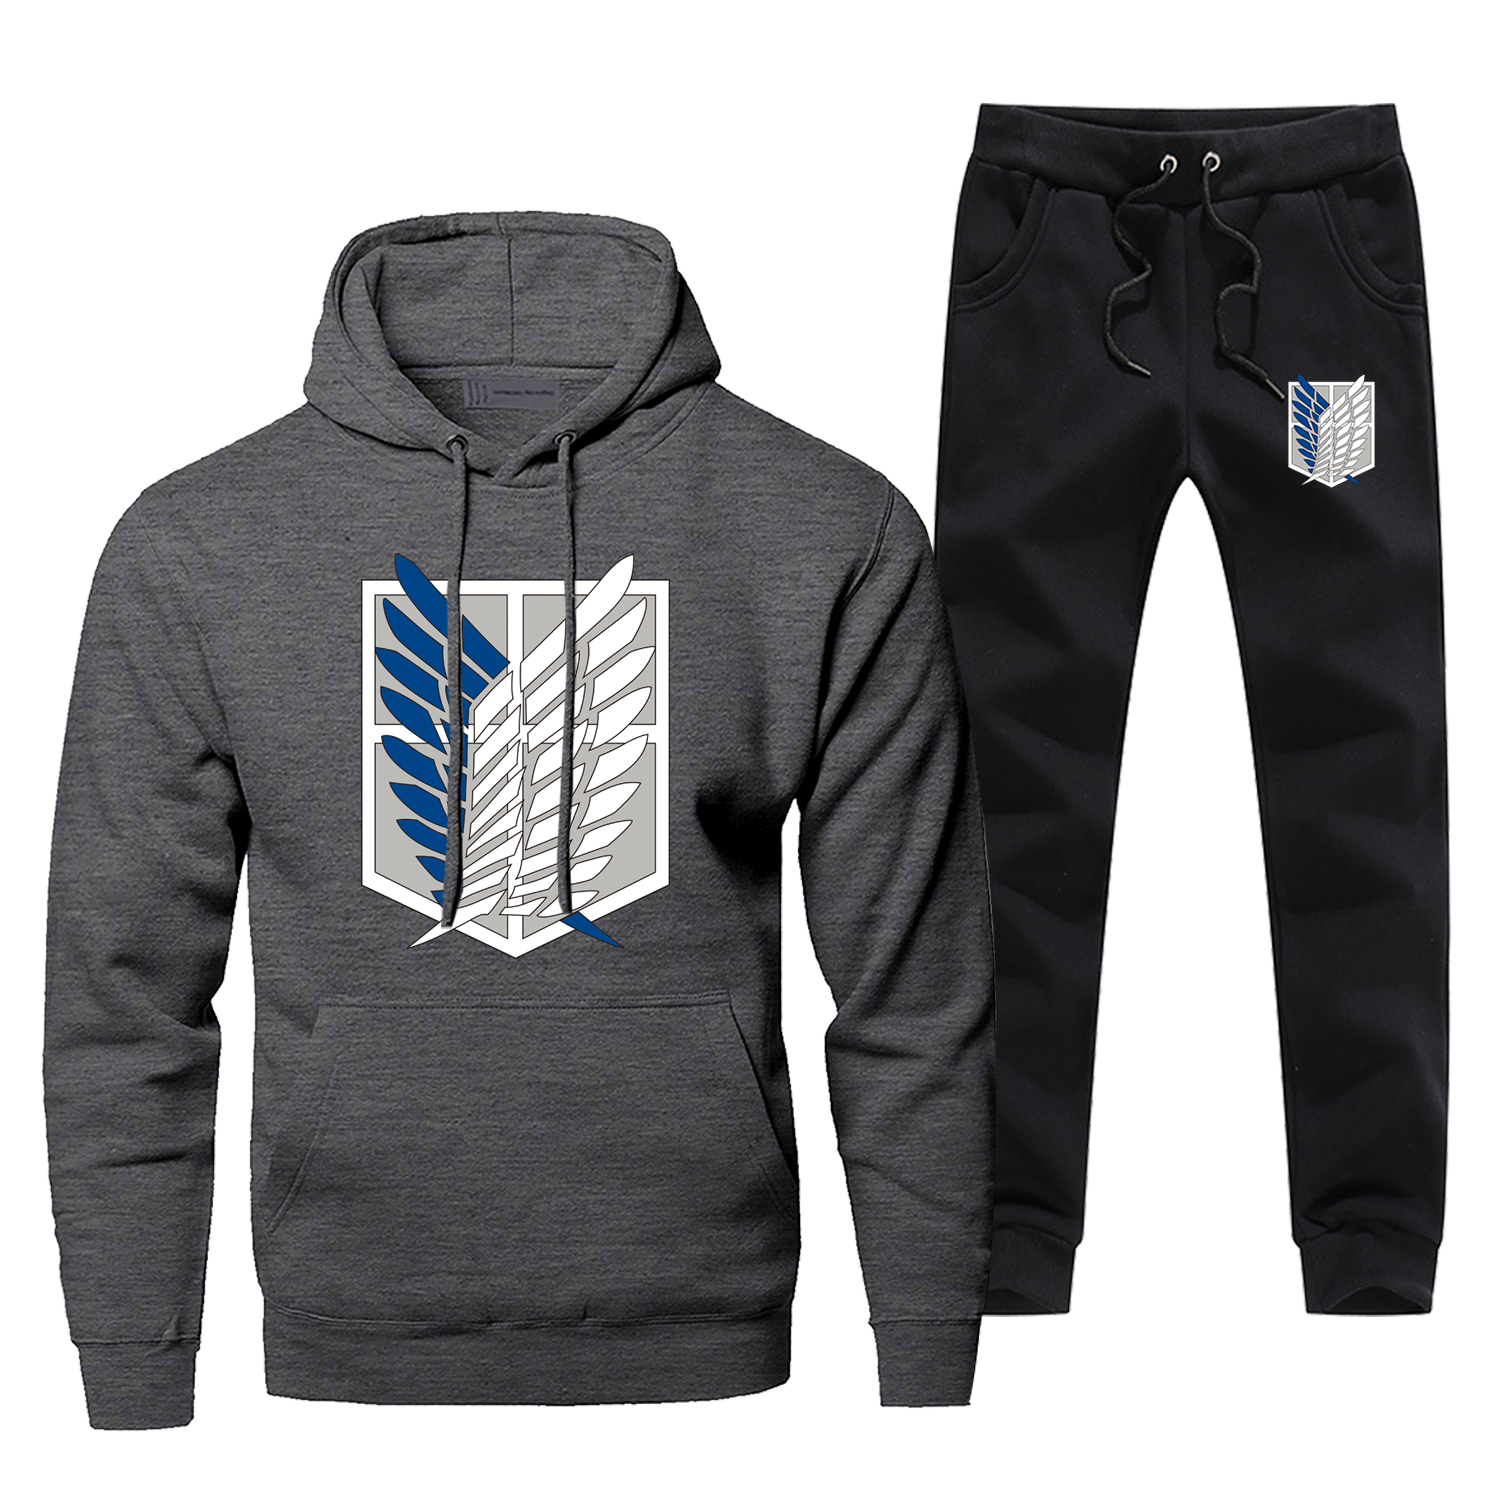 Attack On Japan Anime Male Set Titan Casual Fashion Men's Full Suit Tracksuit Winter Fleece Scout Legion Cosplay Sportsman Wear